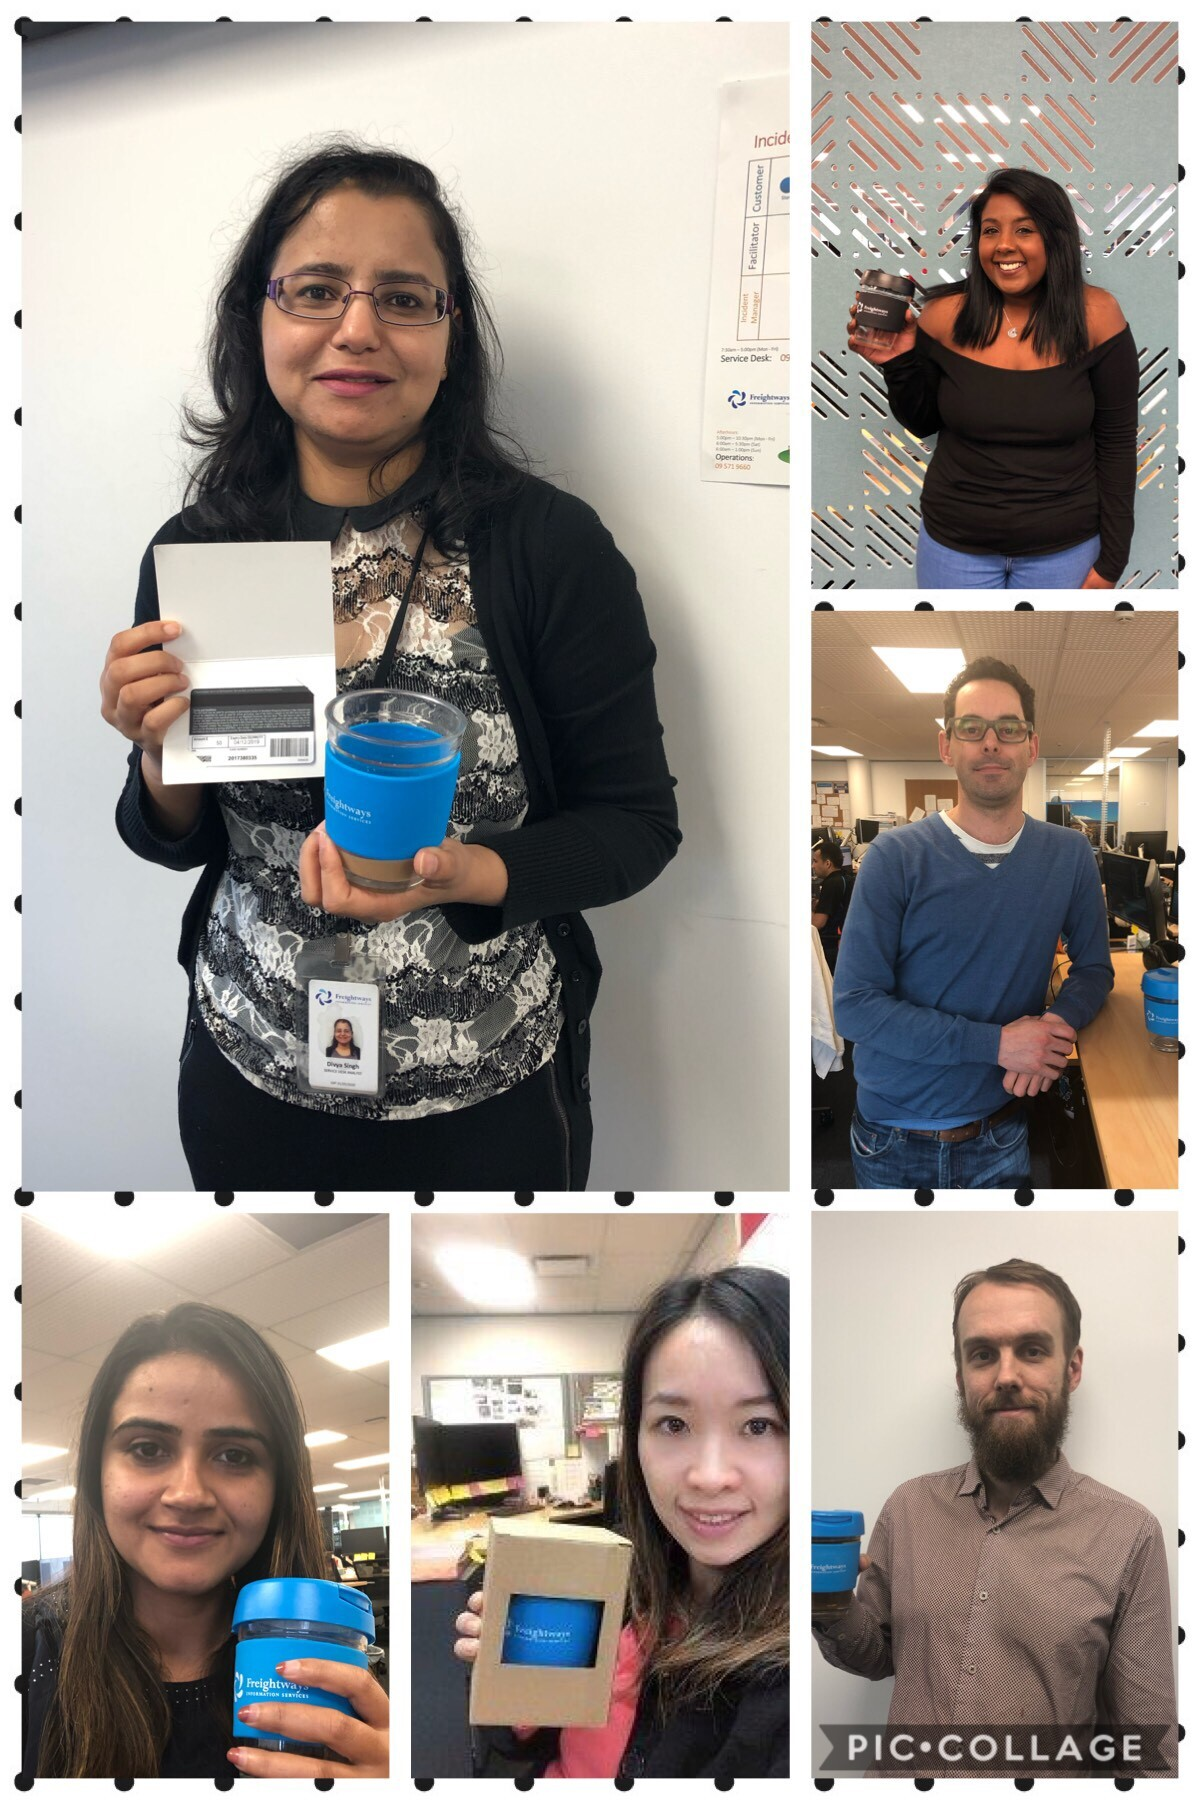 Our Healthy July challenge winners flaunting their prizes